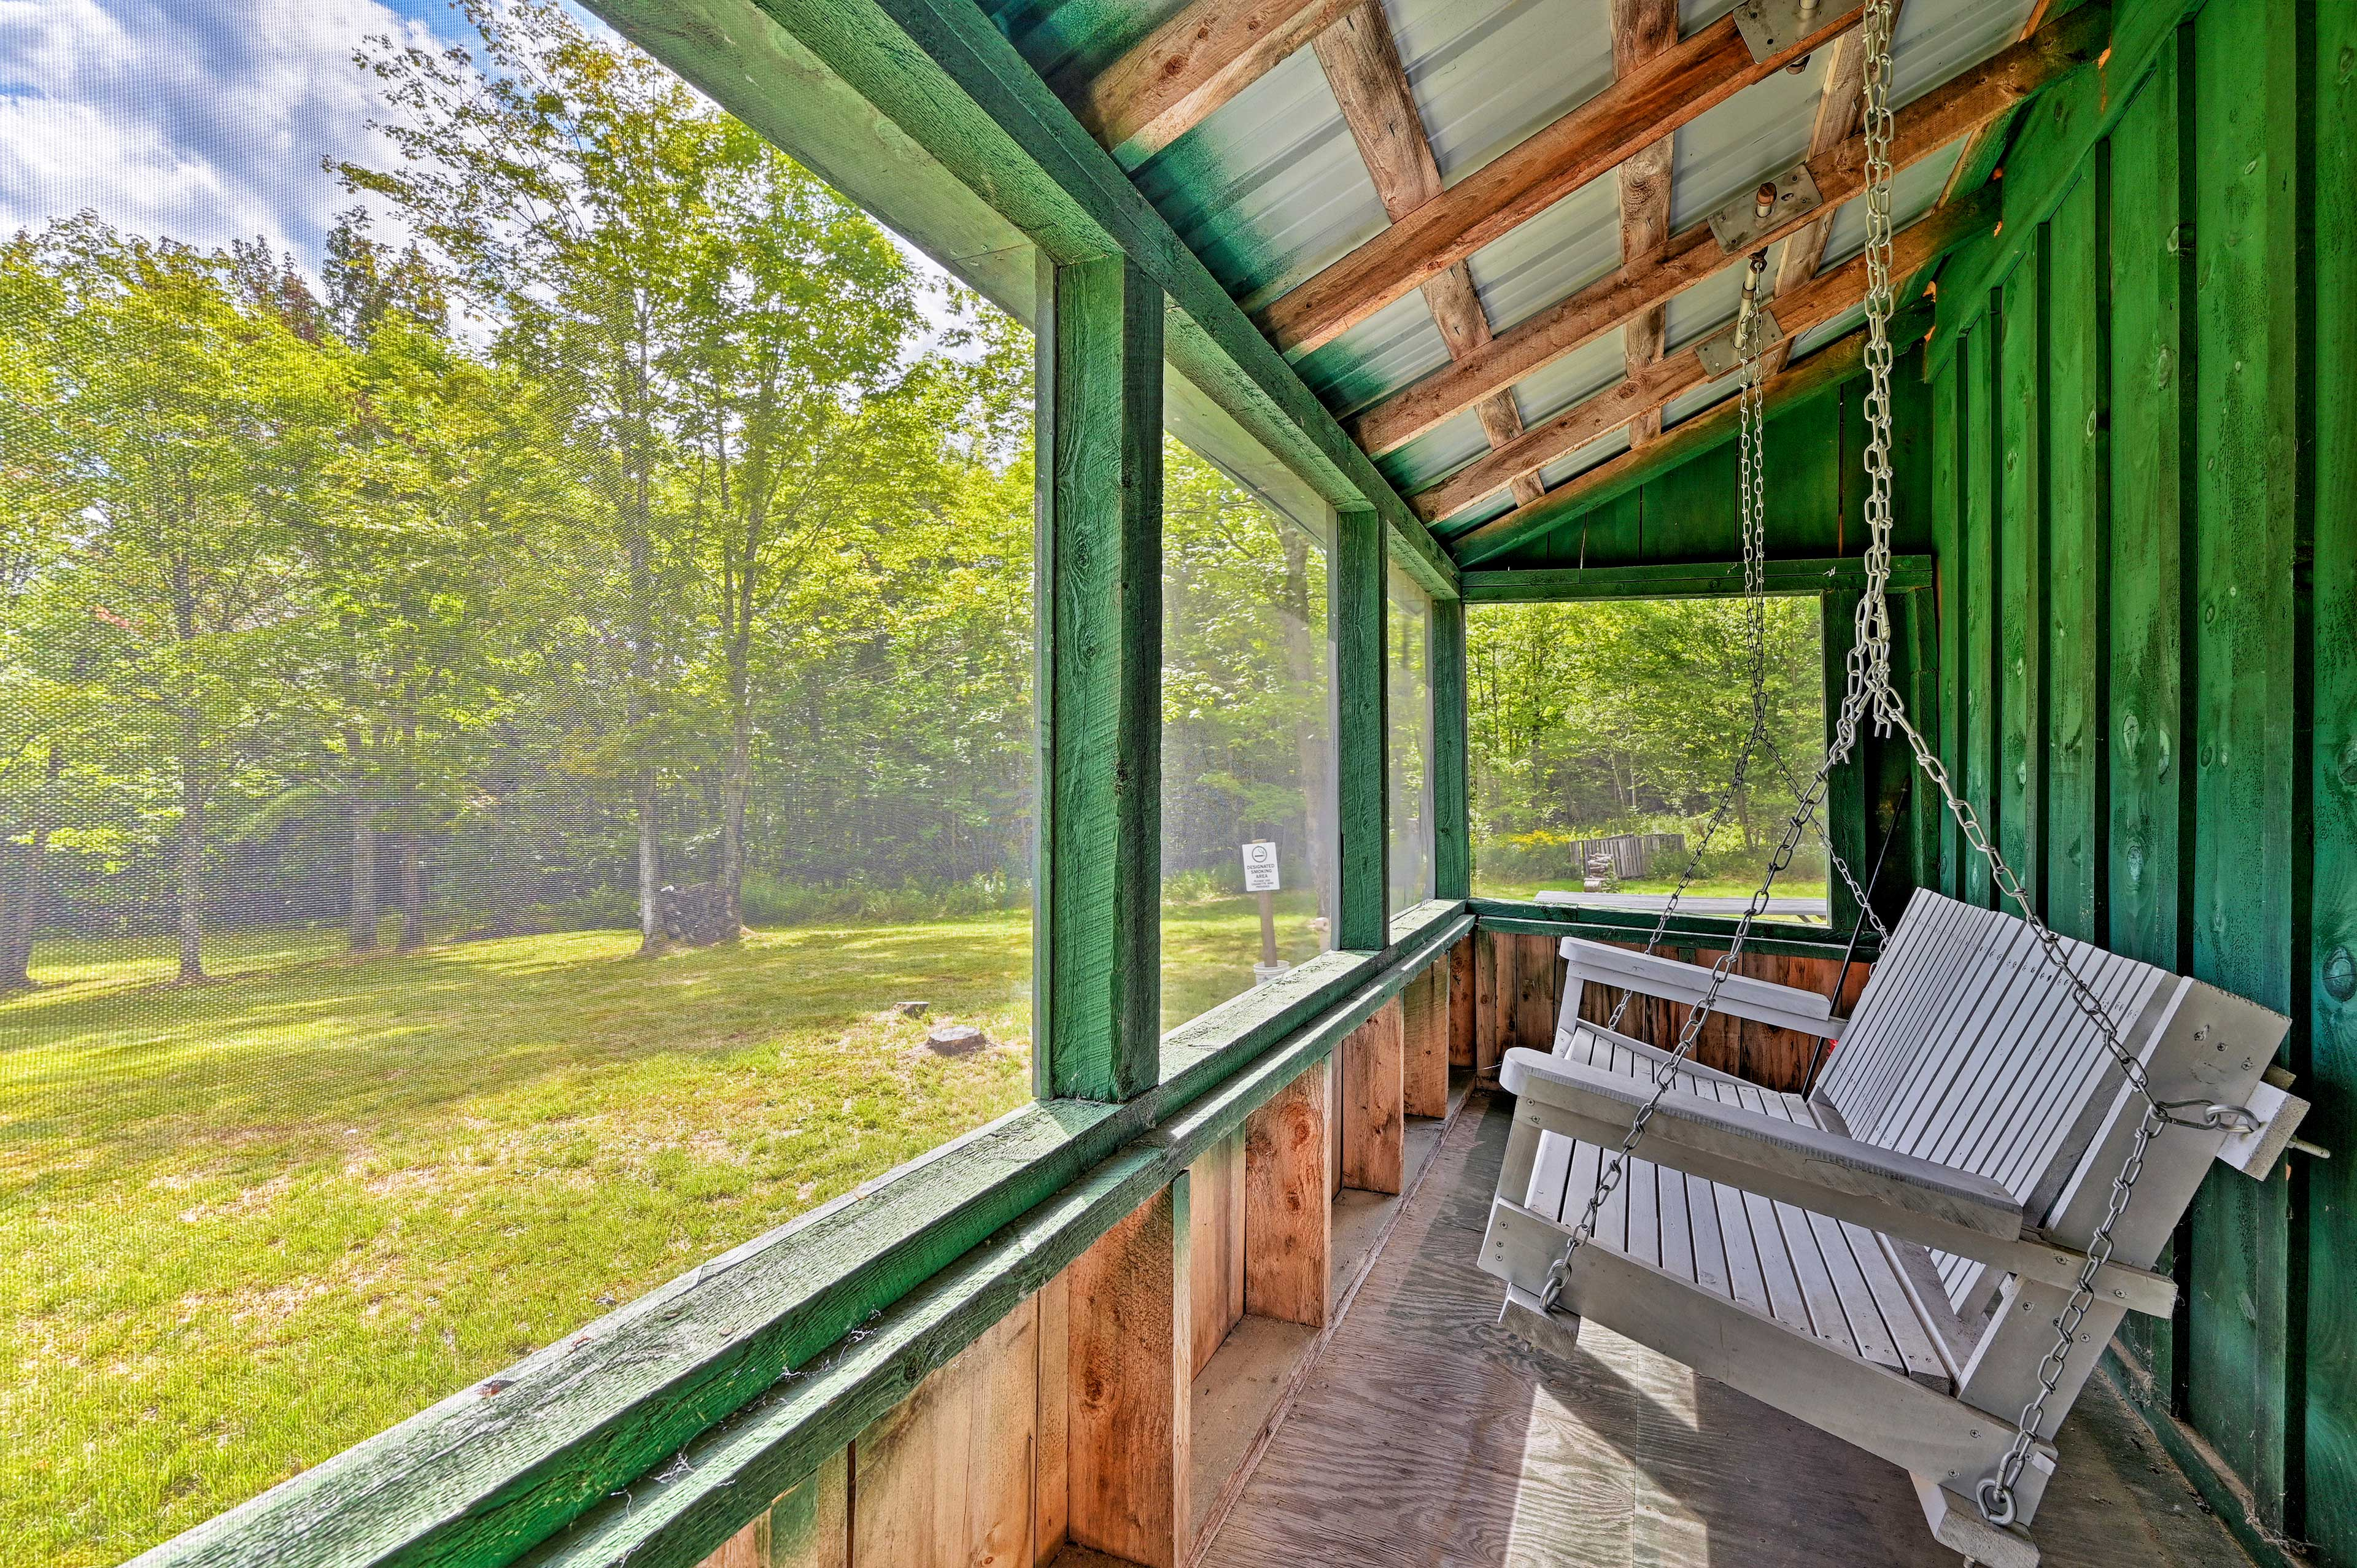 Get away to Vermont and stay at this Granby vacation rental cabin!